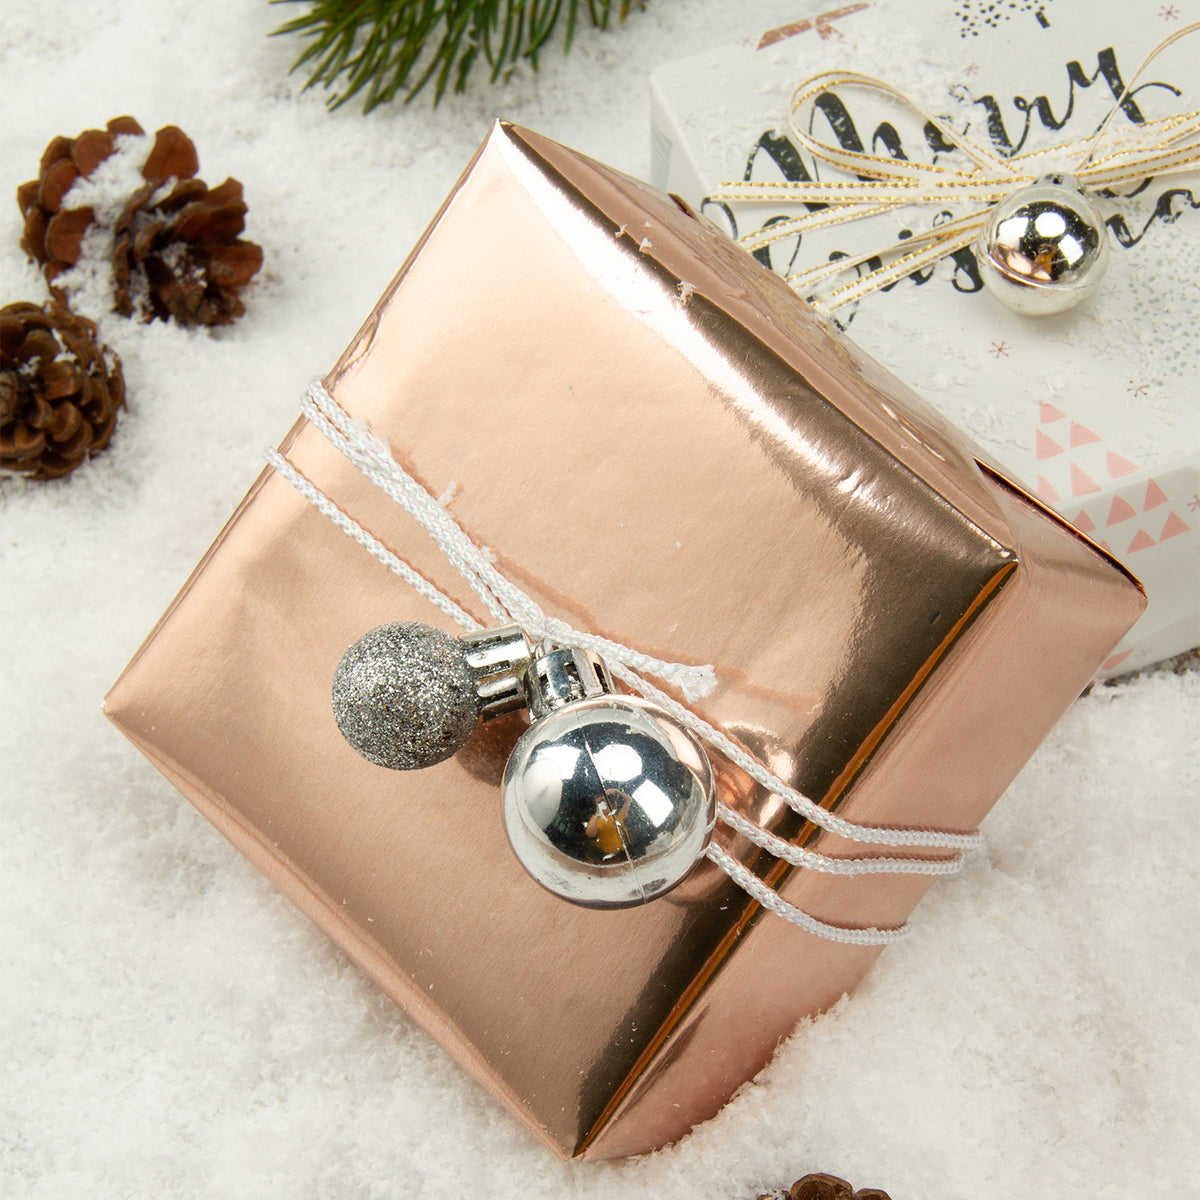 Wrapaholic-Rose-Gold-and- Grey-Holiday-Design-with-Metallic-Foil-Shine-Christmas-Gift-Wrapping-Paper-Roll-4 Rolls-3